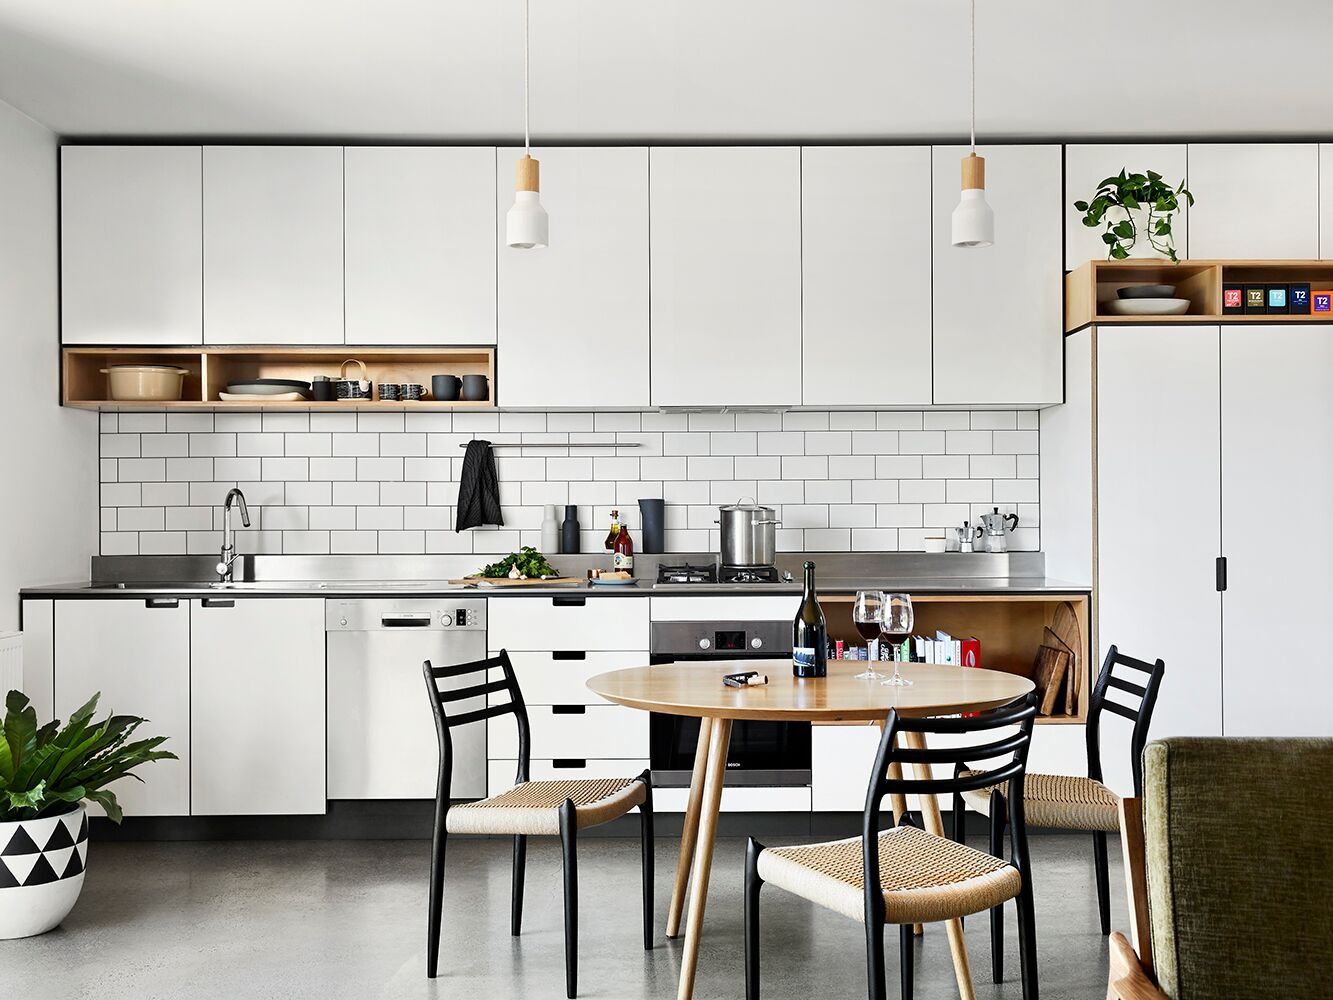 1 North Street by HIP V. HYPE - Liam Wallis - Australia Design & Architecture - Sustainable - Photographed by Tess Kelly - Image 10